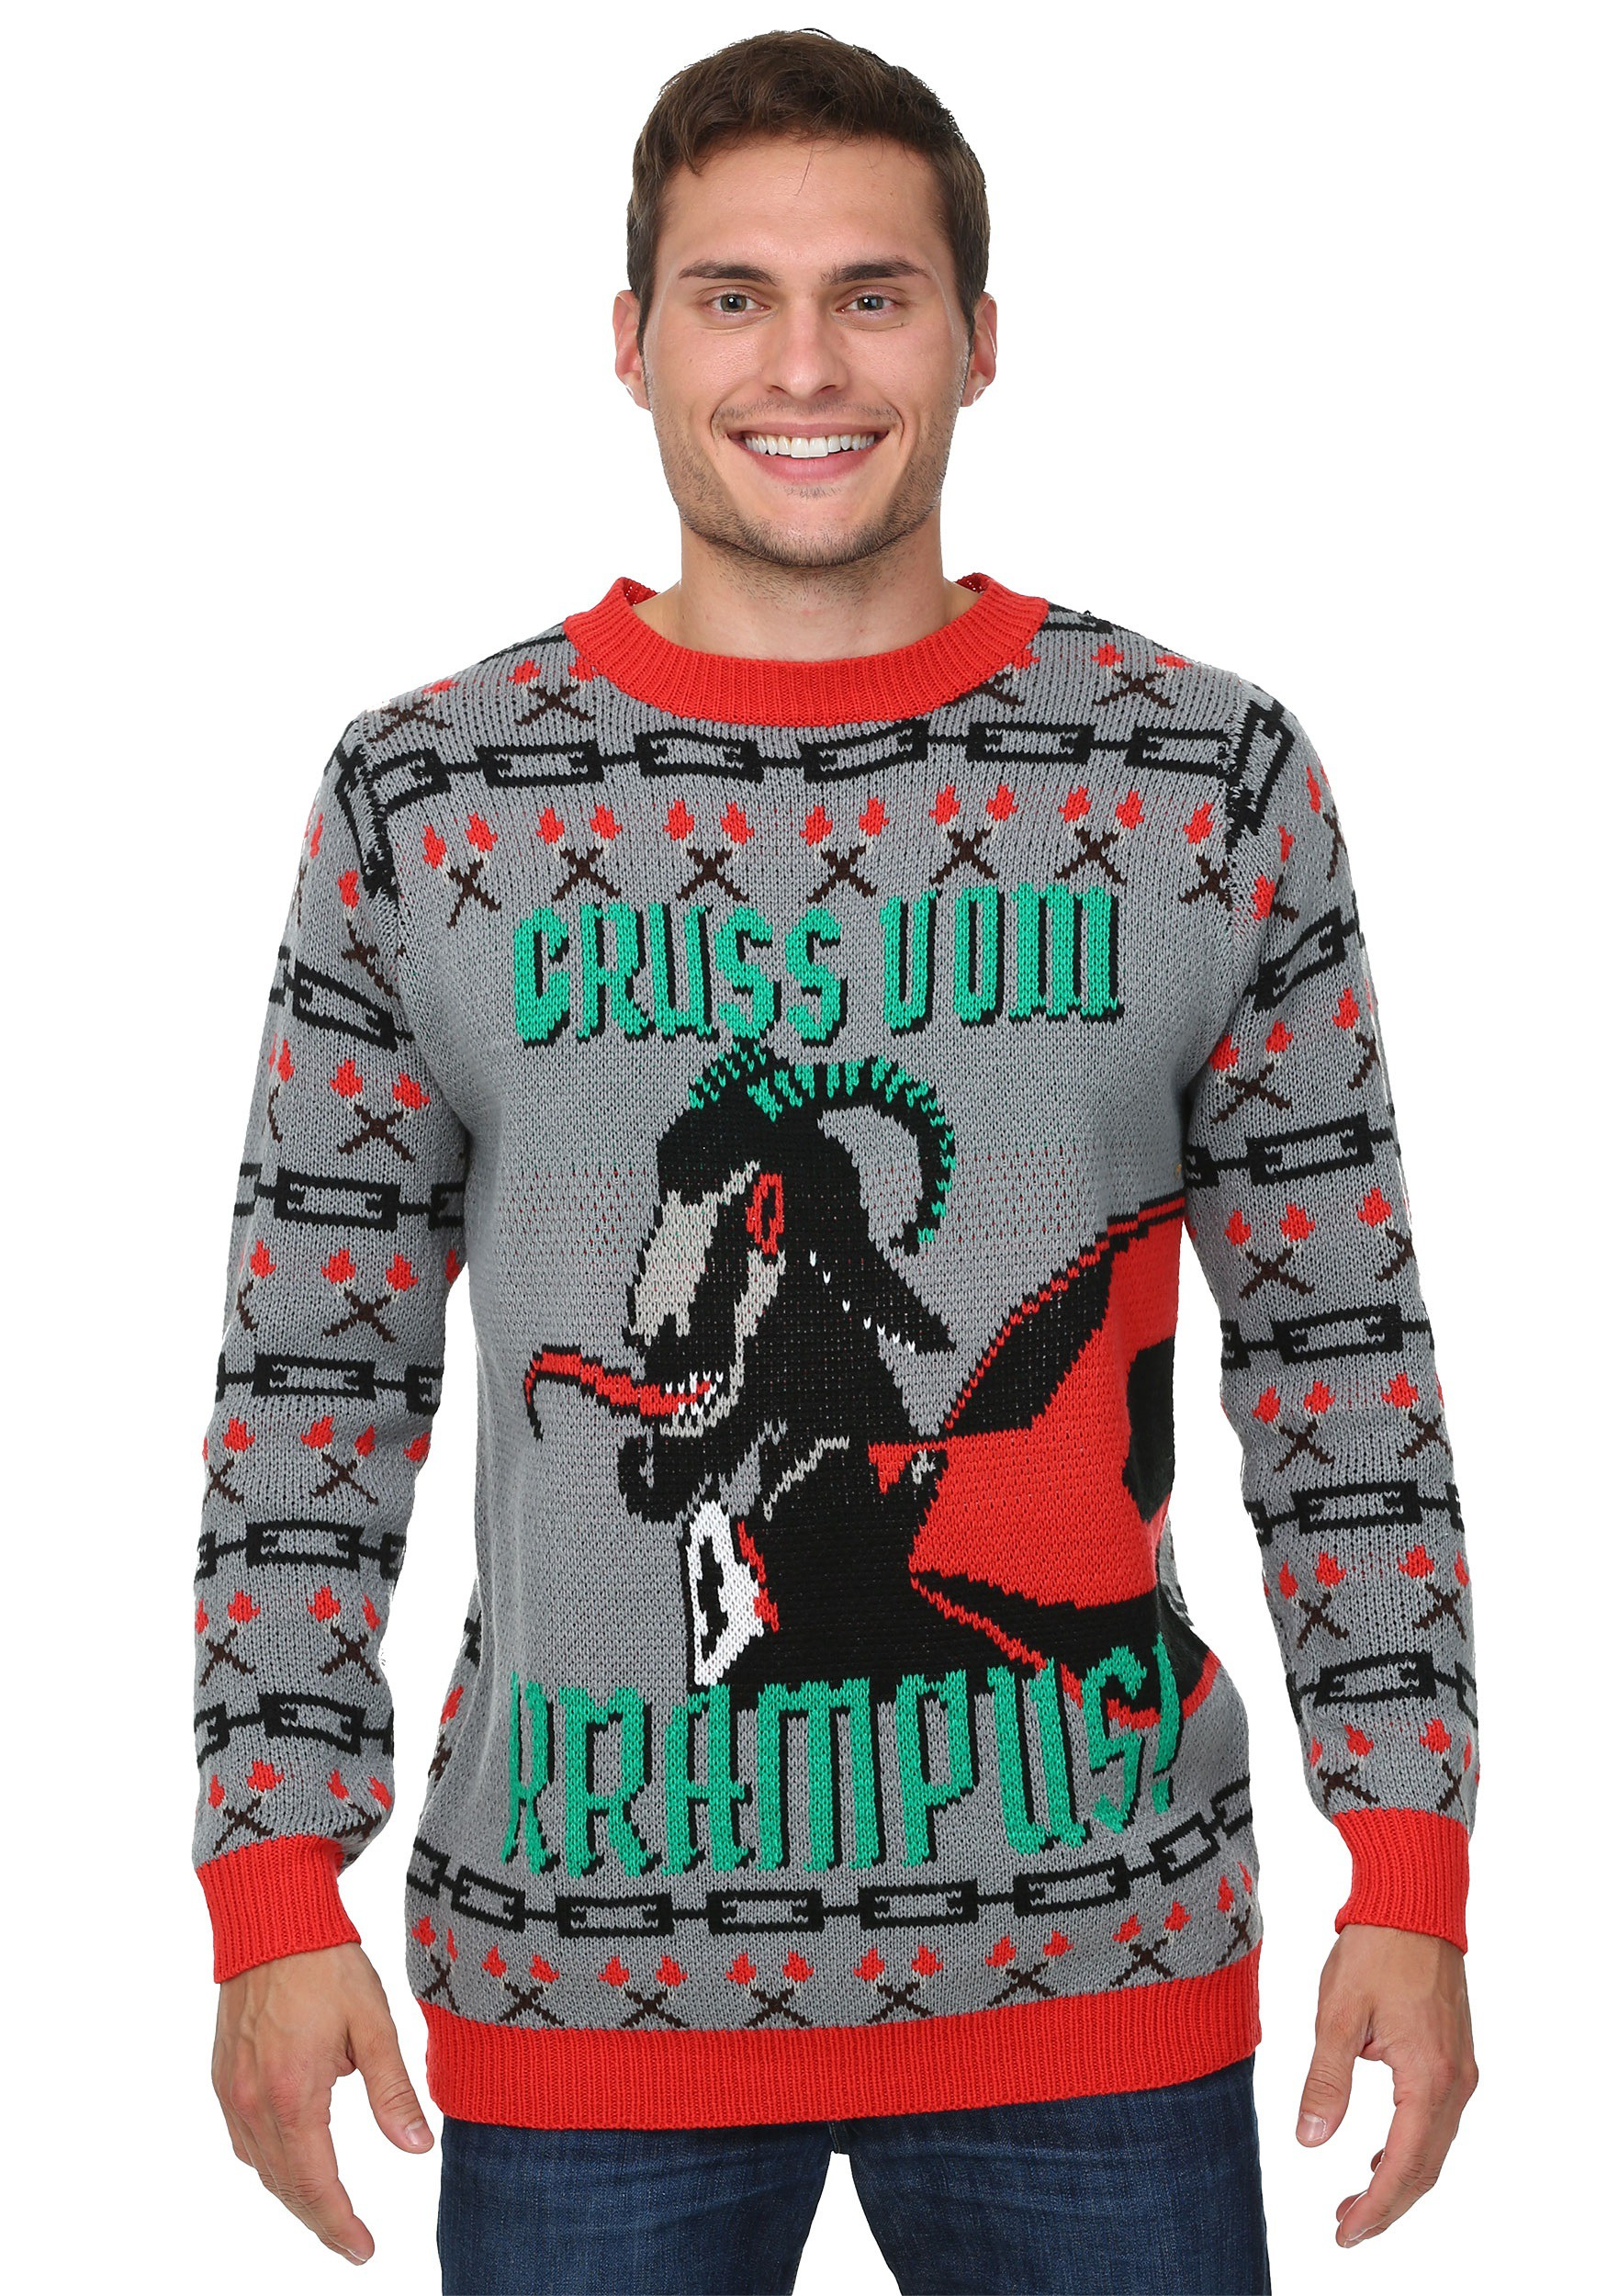 krampus christmas sweater - How To Decorate A Ugly Christmas Sweater